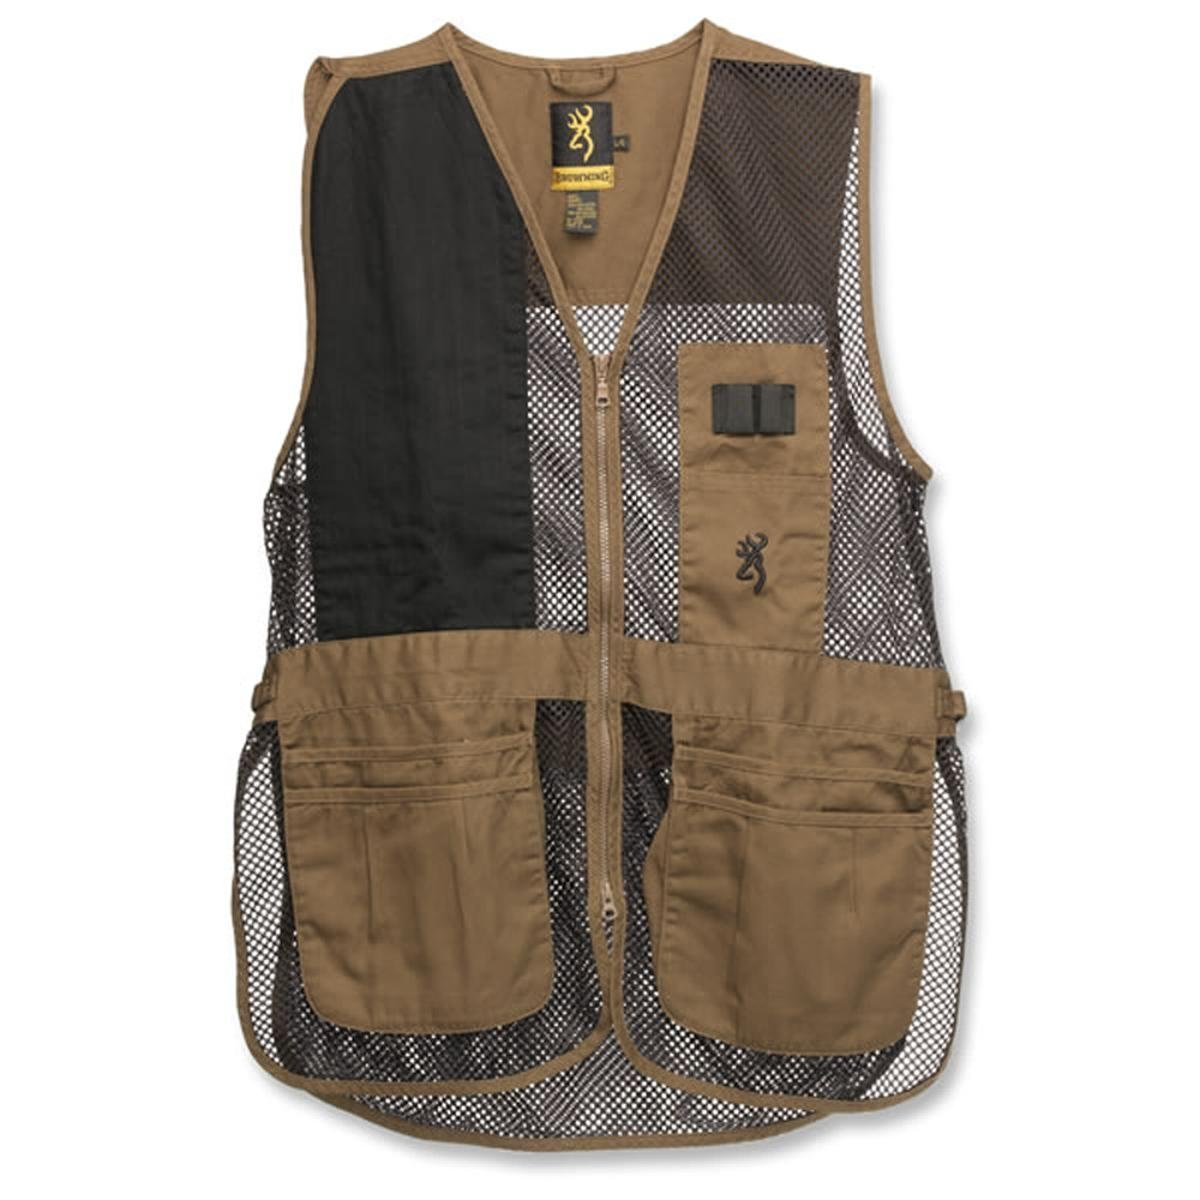 Browning, Trapper Creek Vest, Clay/Black, XXX-Large